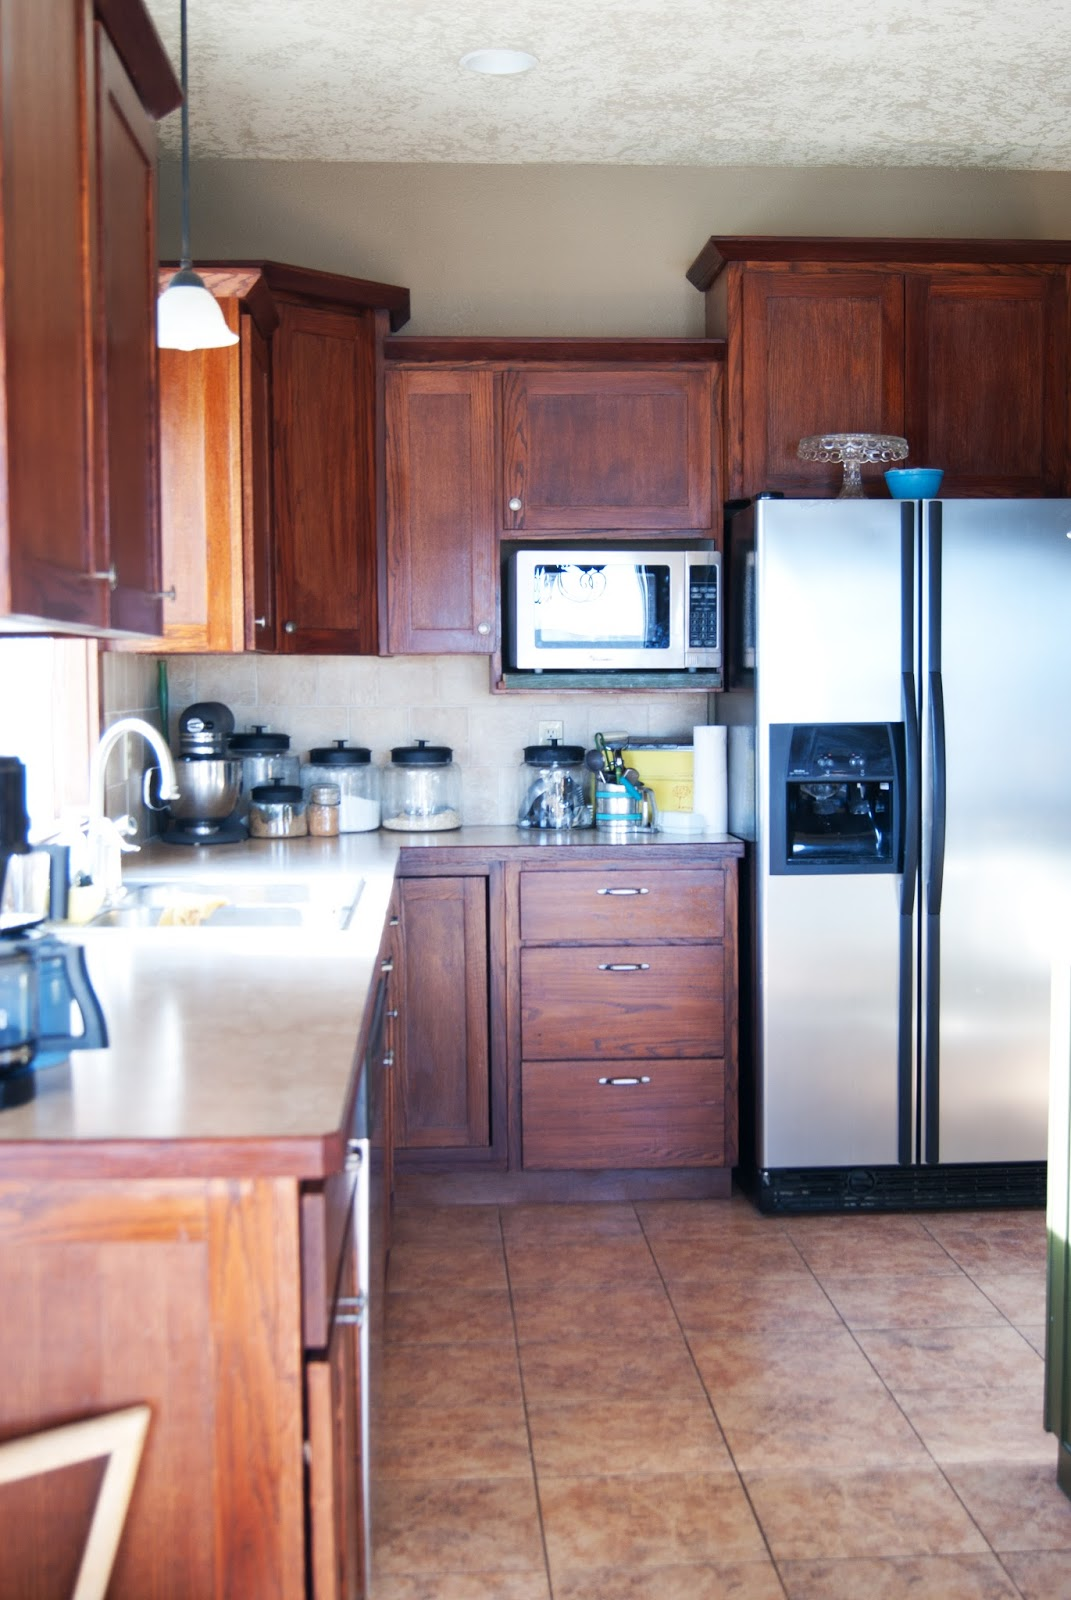 Painting the kitchen cabinets primer paint averie for Best primer for painting kitchen cabinets